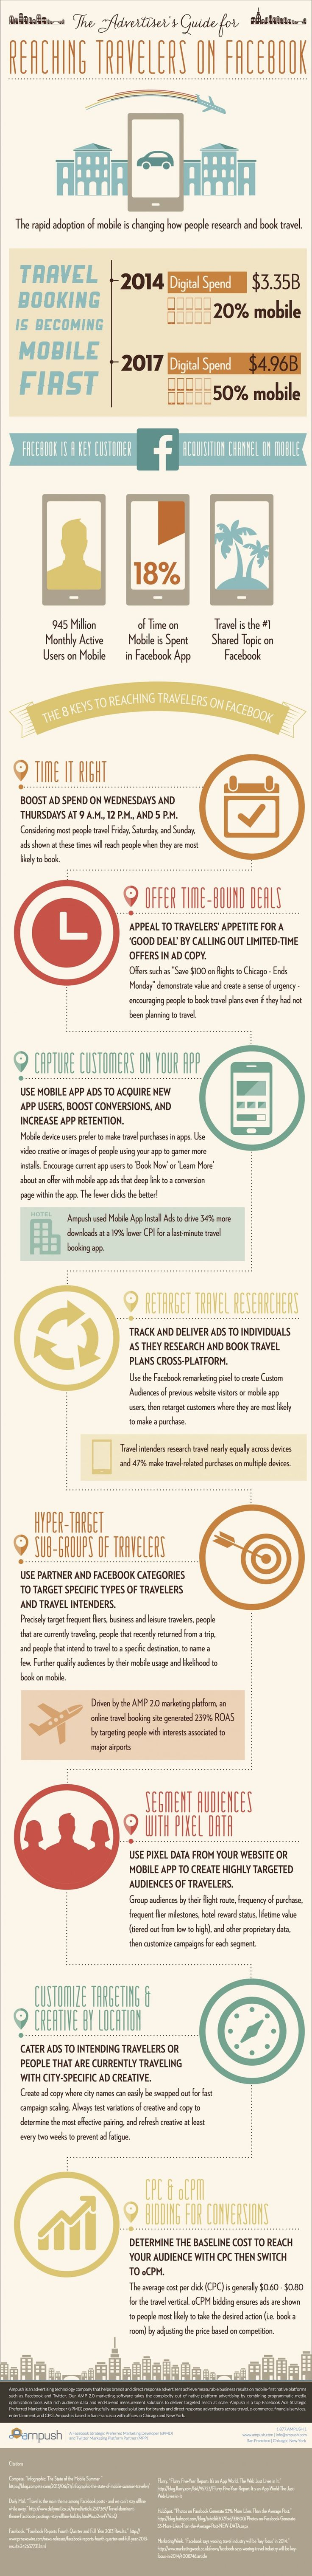 Advertisers-Guide-to-Reaching-Travelers-on-Facebook-Q1-2014-1